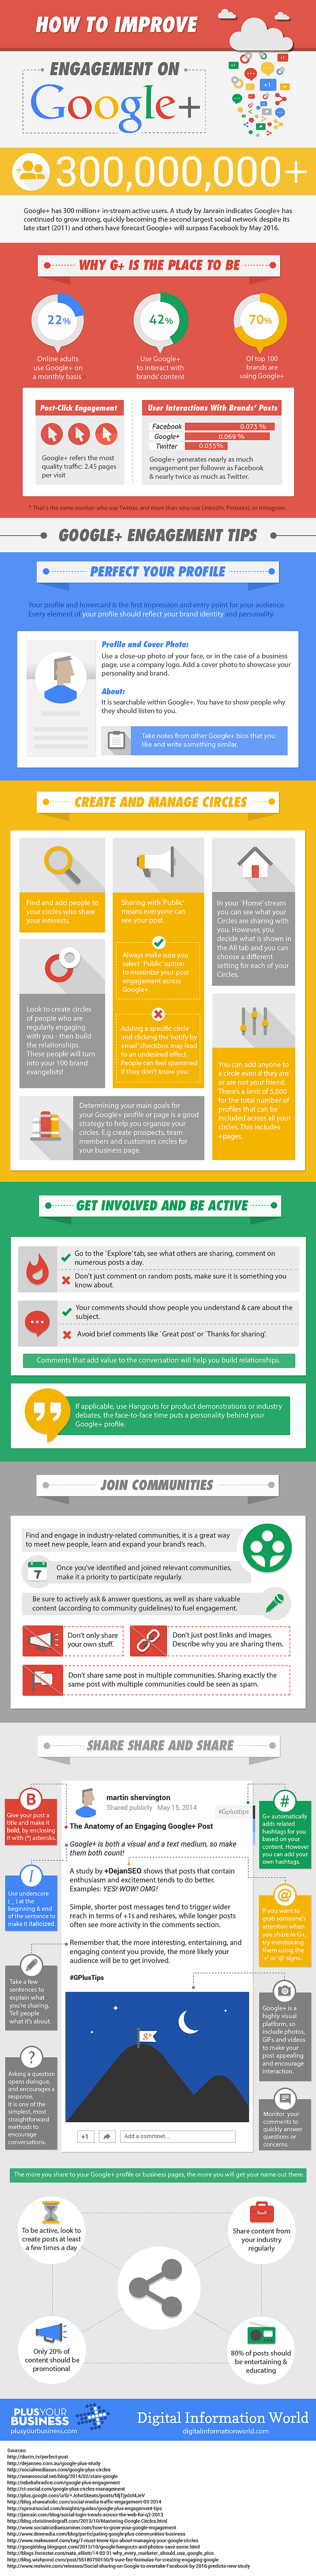 INFOGRAPHIC: A Complete Guide to Google+ Marketing